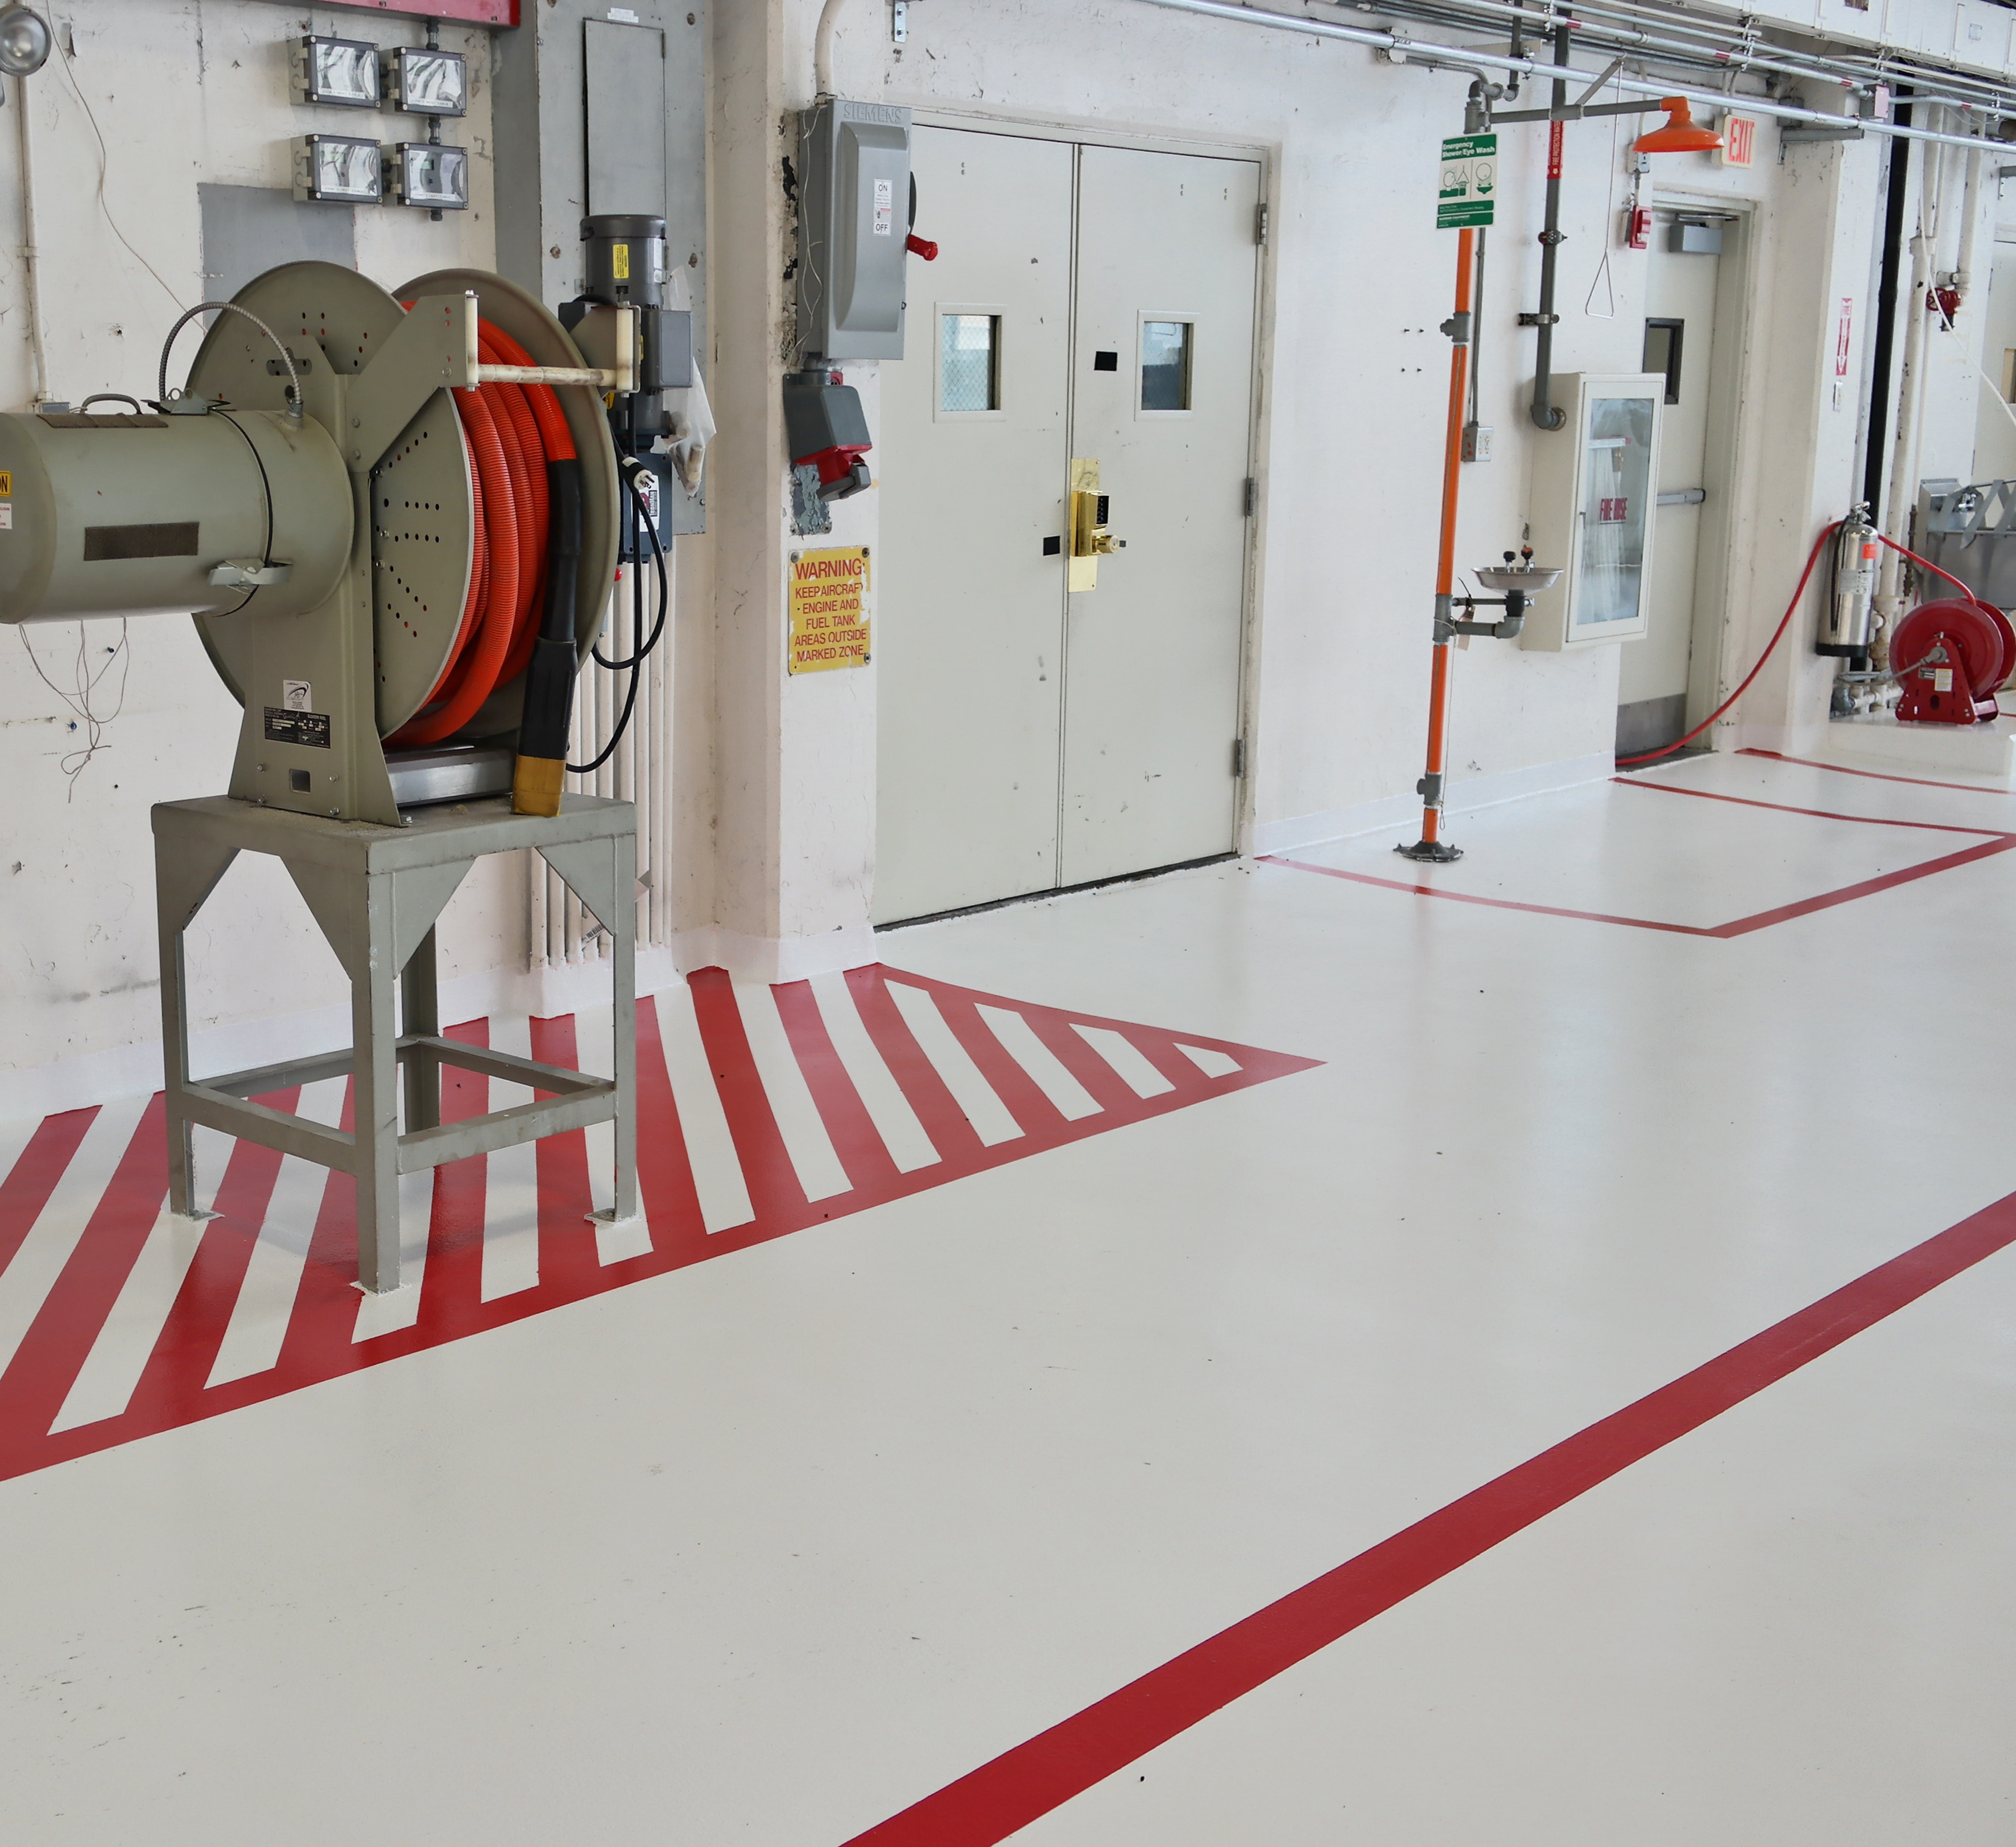 From surface prep, to application, it takes more than you may think to deliver a quality epoxy coated floor that will last for years to come.